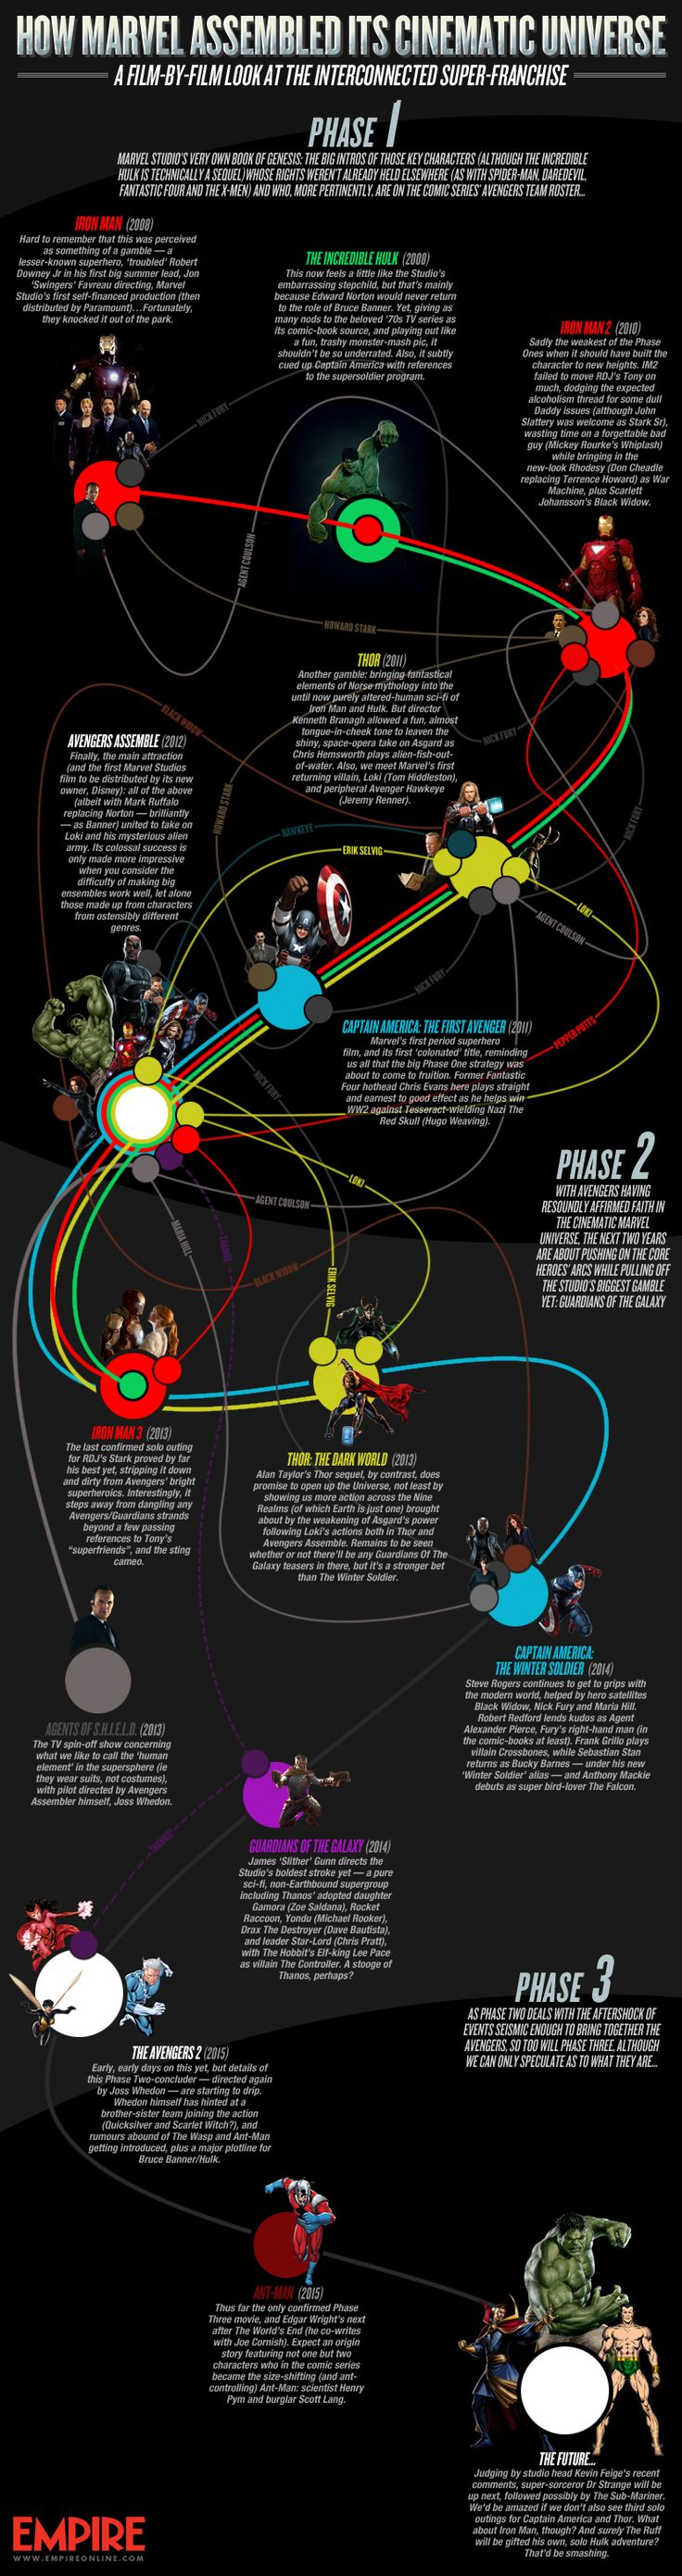 How Marvel Assembled Its Cinematic Universe